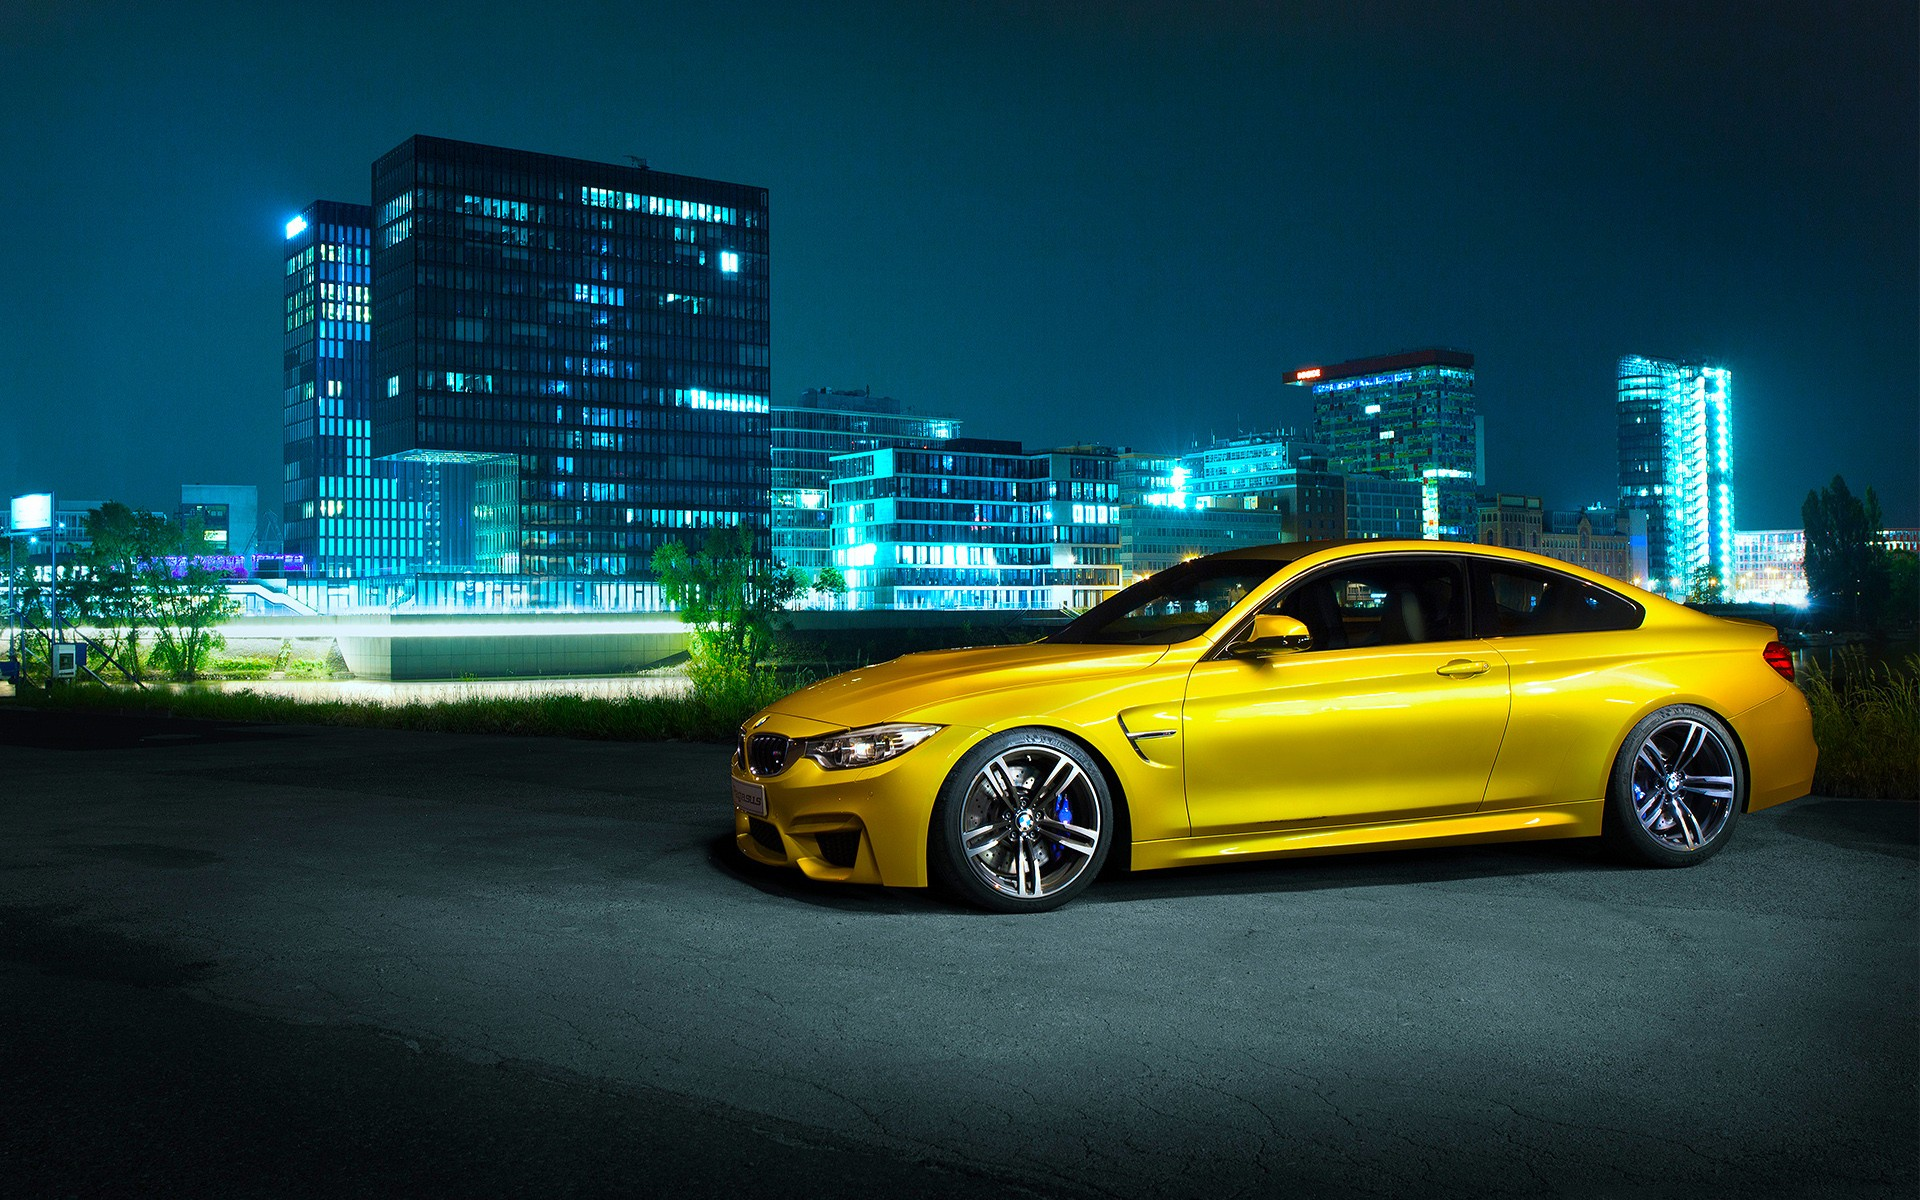 Bmw F82 M4 Coupe 2 Wallpaper Hd Car Wallpapers Id 5679